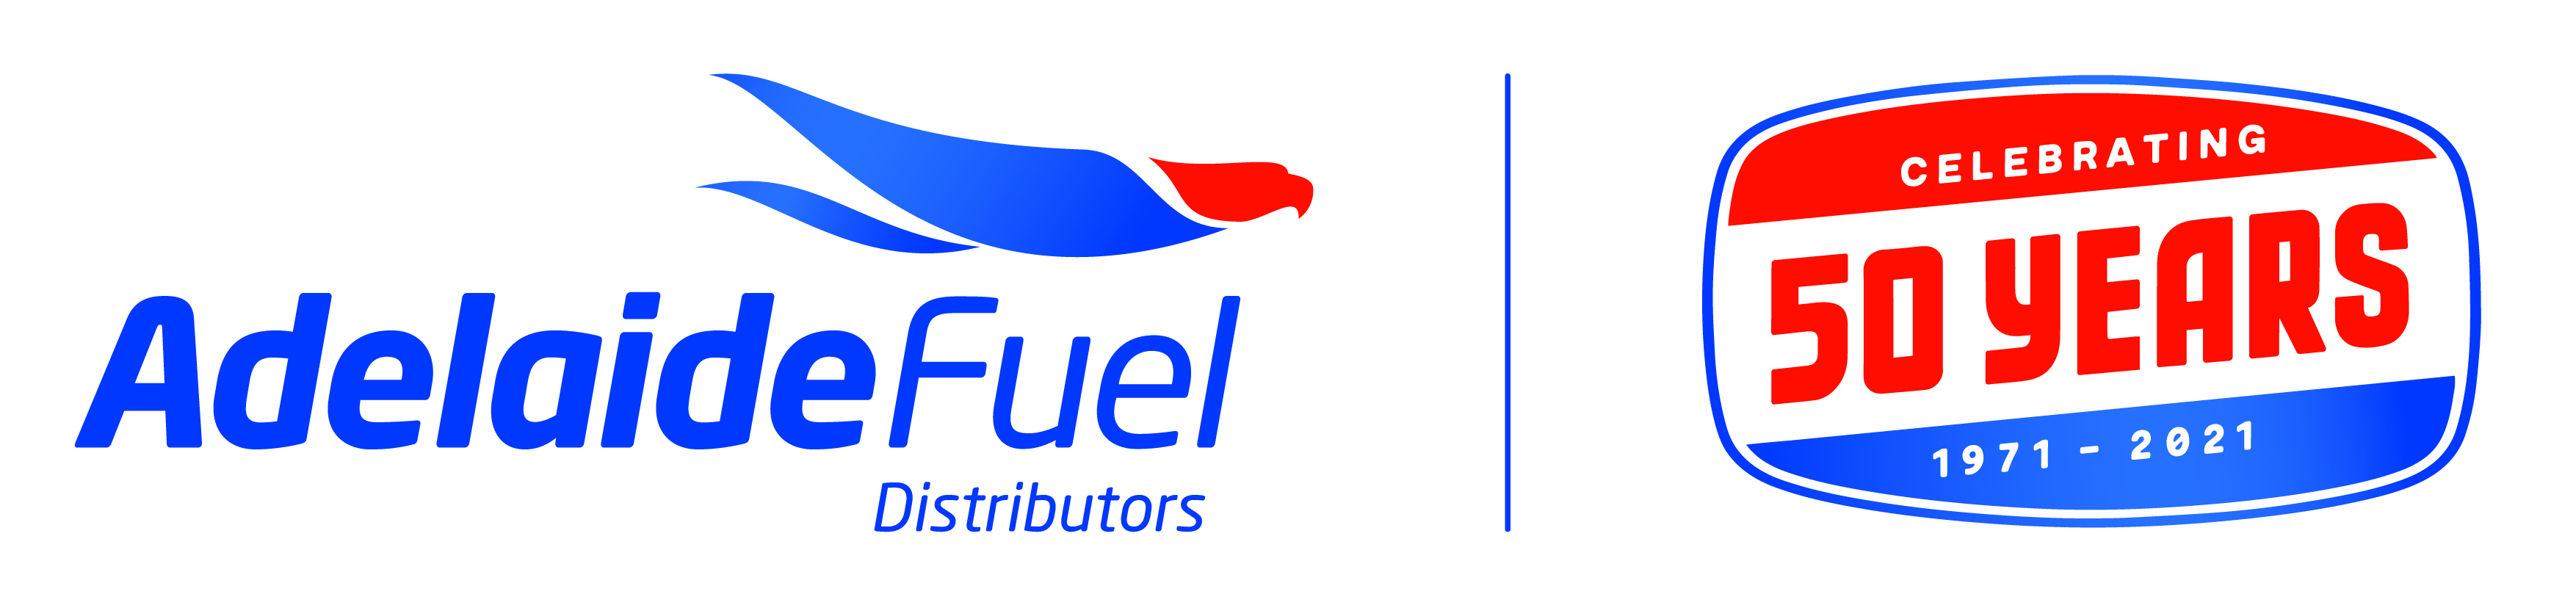 Adelaide Fuel Distributors